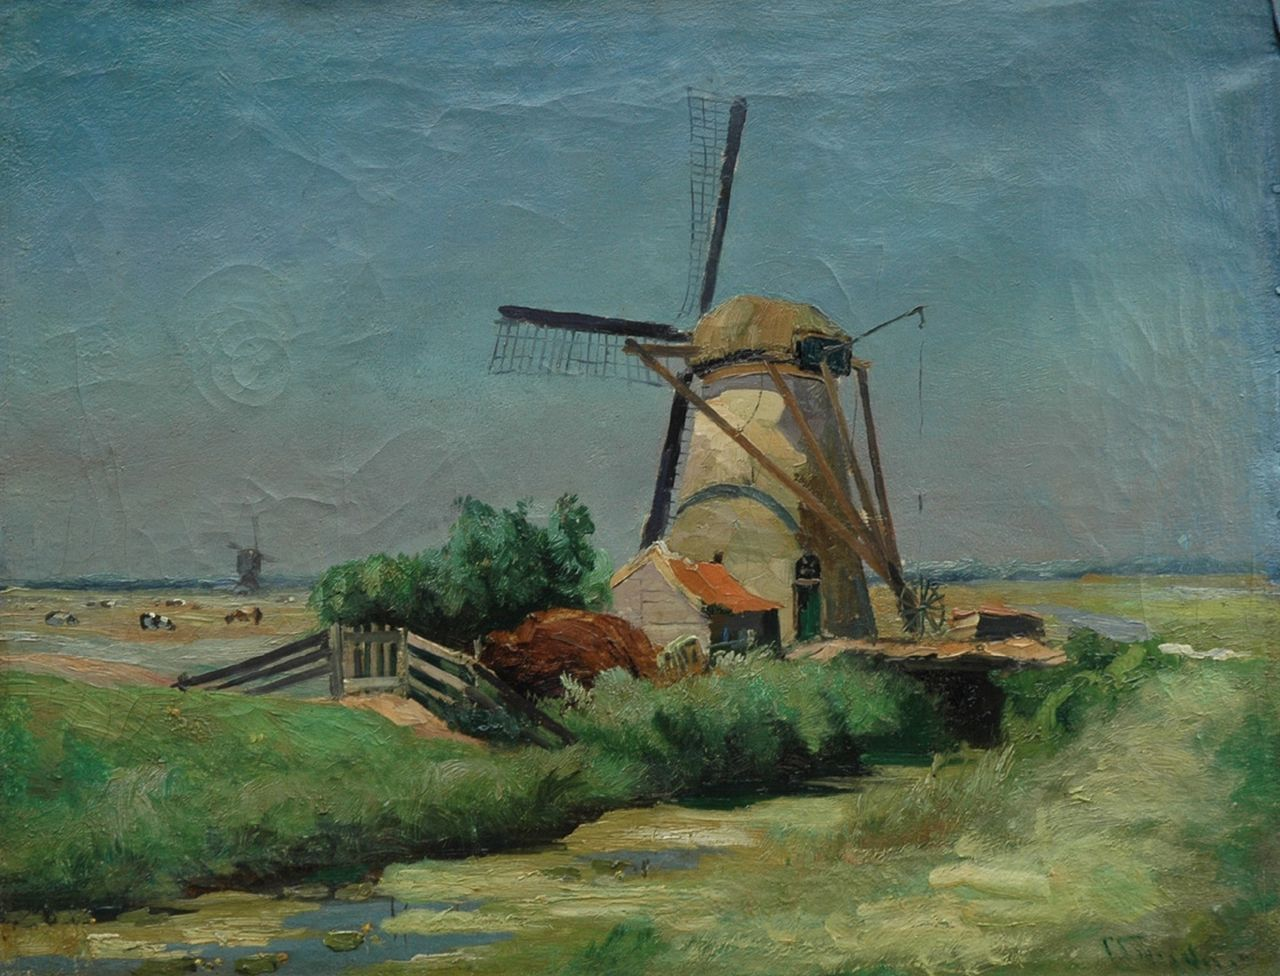 Snijders Chr.P.  | Christiaan Pieter 'Chris' Snijders, A mill in a polder landscape, oil on canvas 49.0 x 64.0 cm